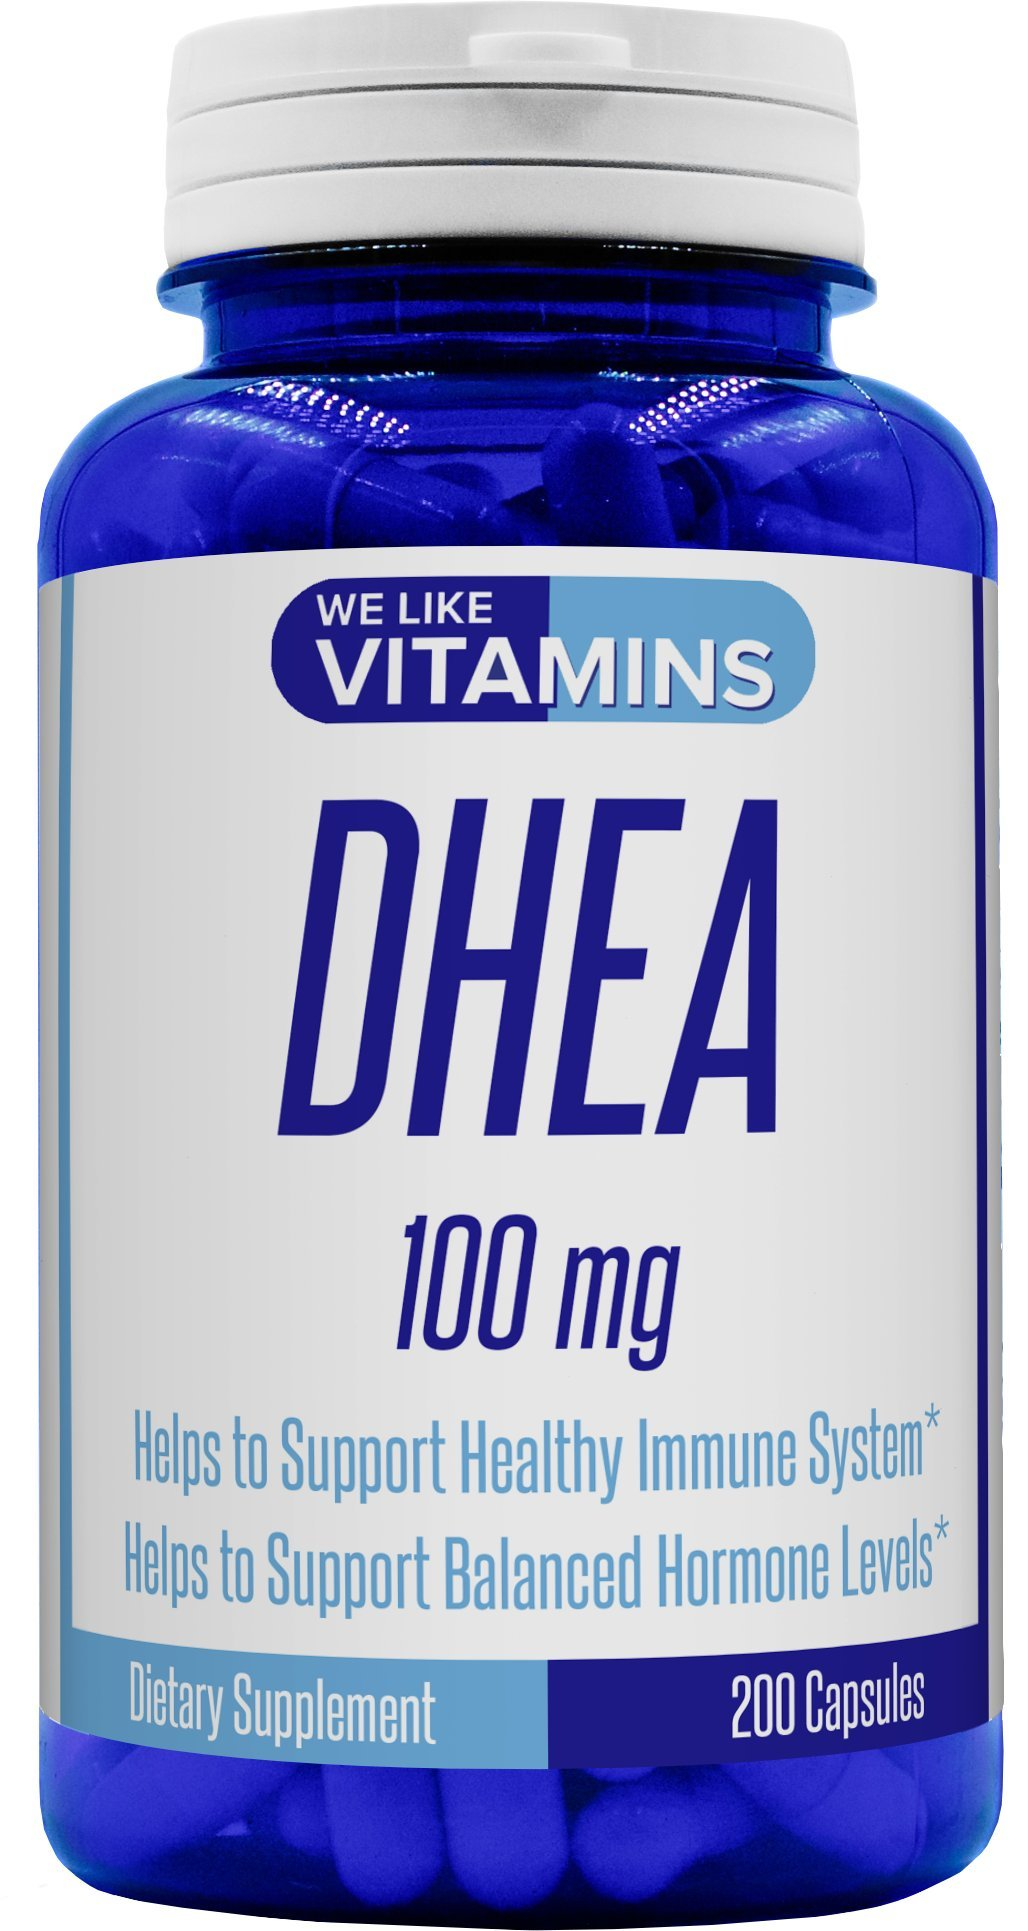 DHEA 100mg 200 capsules - Best Value 200 Day Supply of DHEA Capsules - Helps with Hormone Balance and Energy Levels for Men & Women